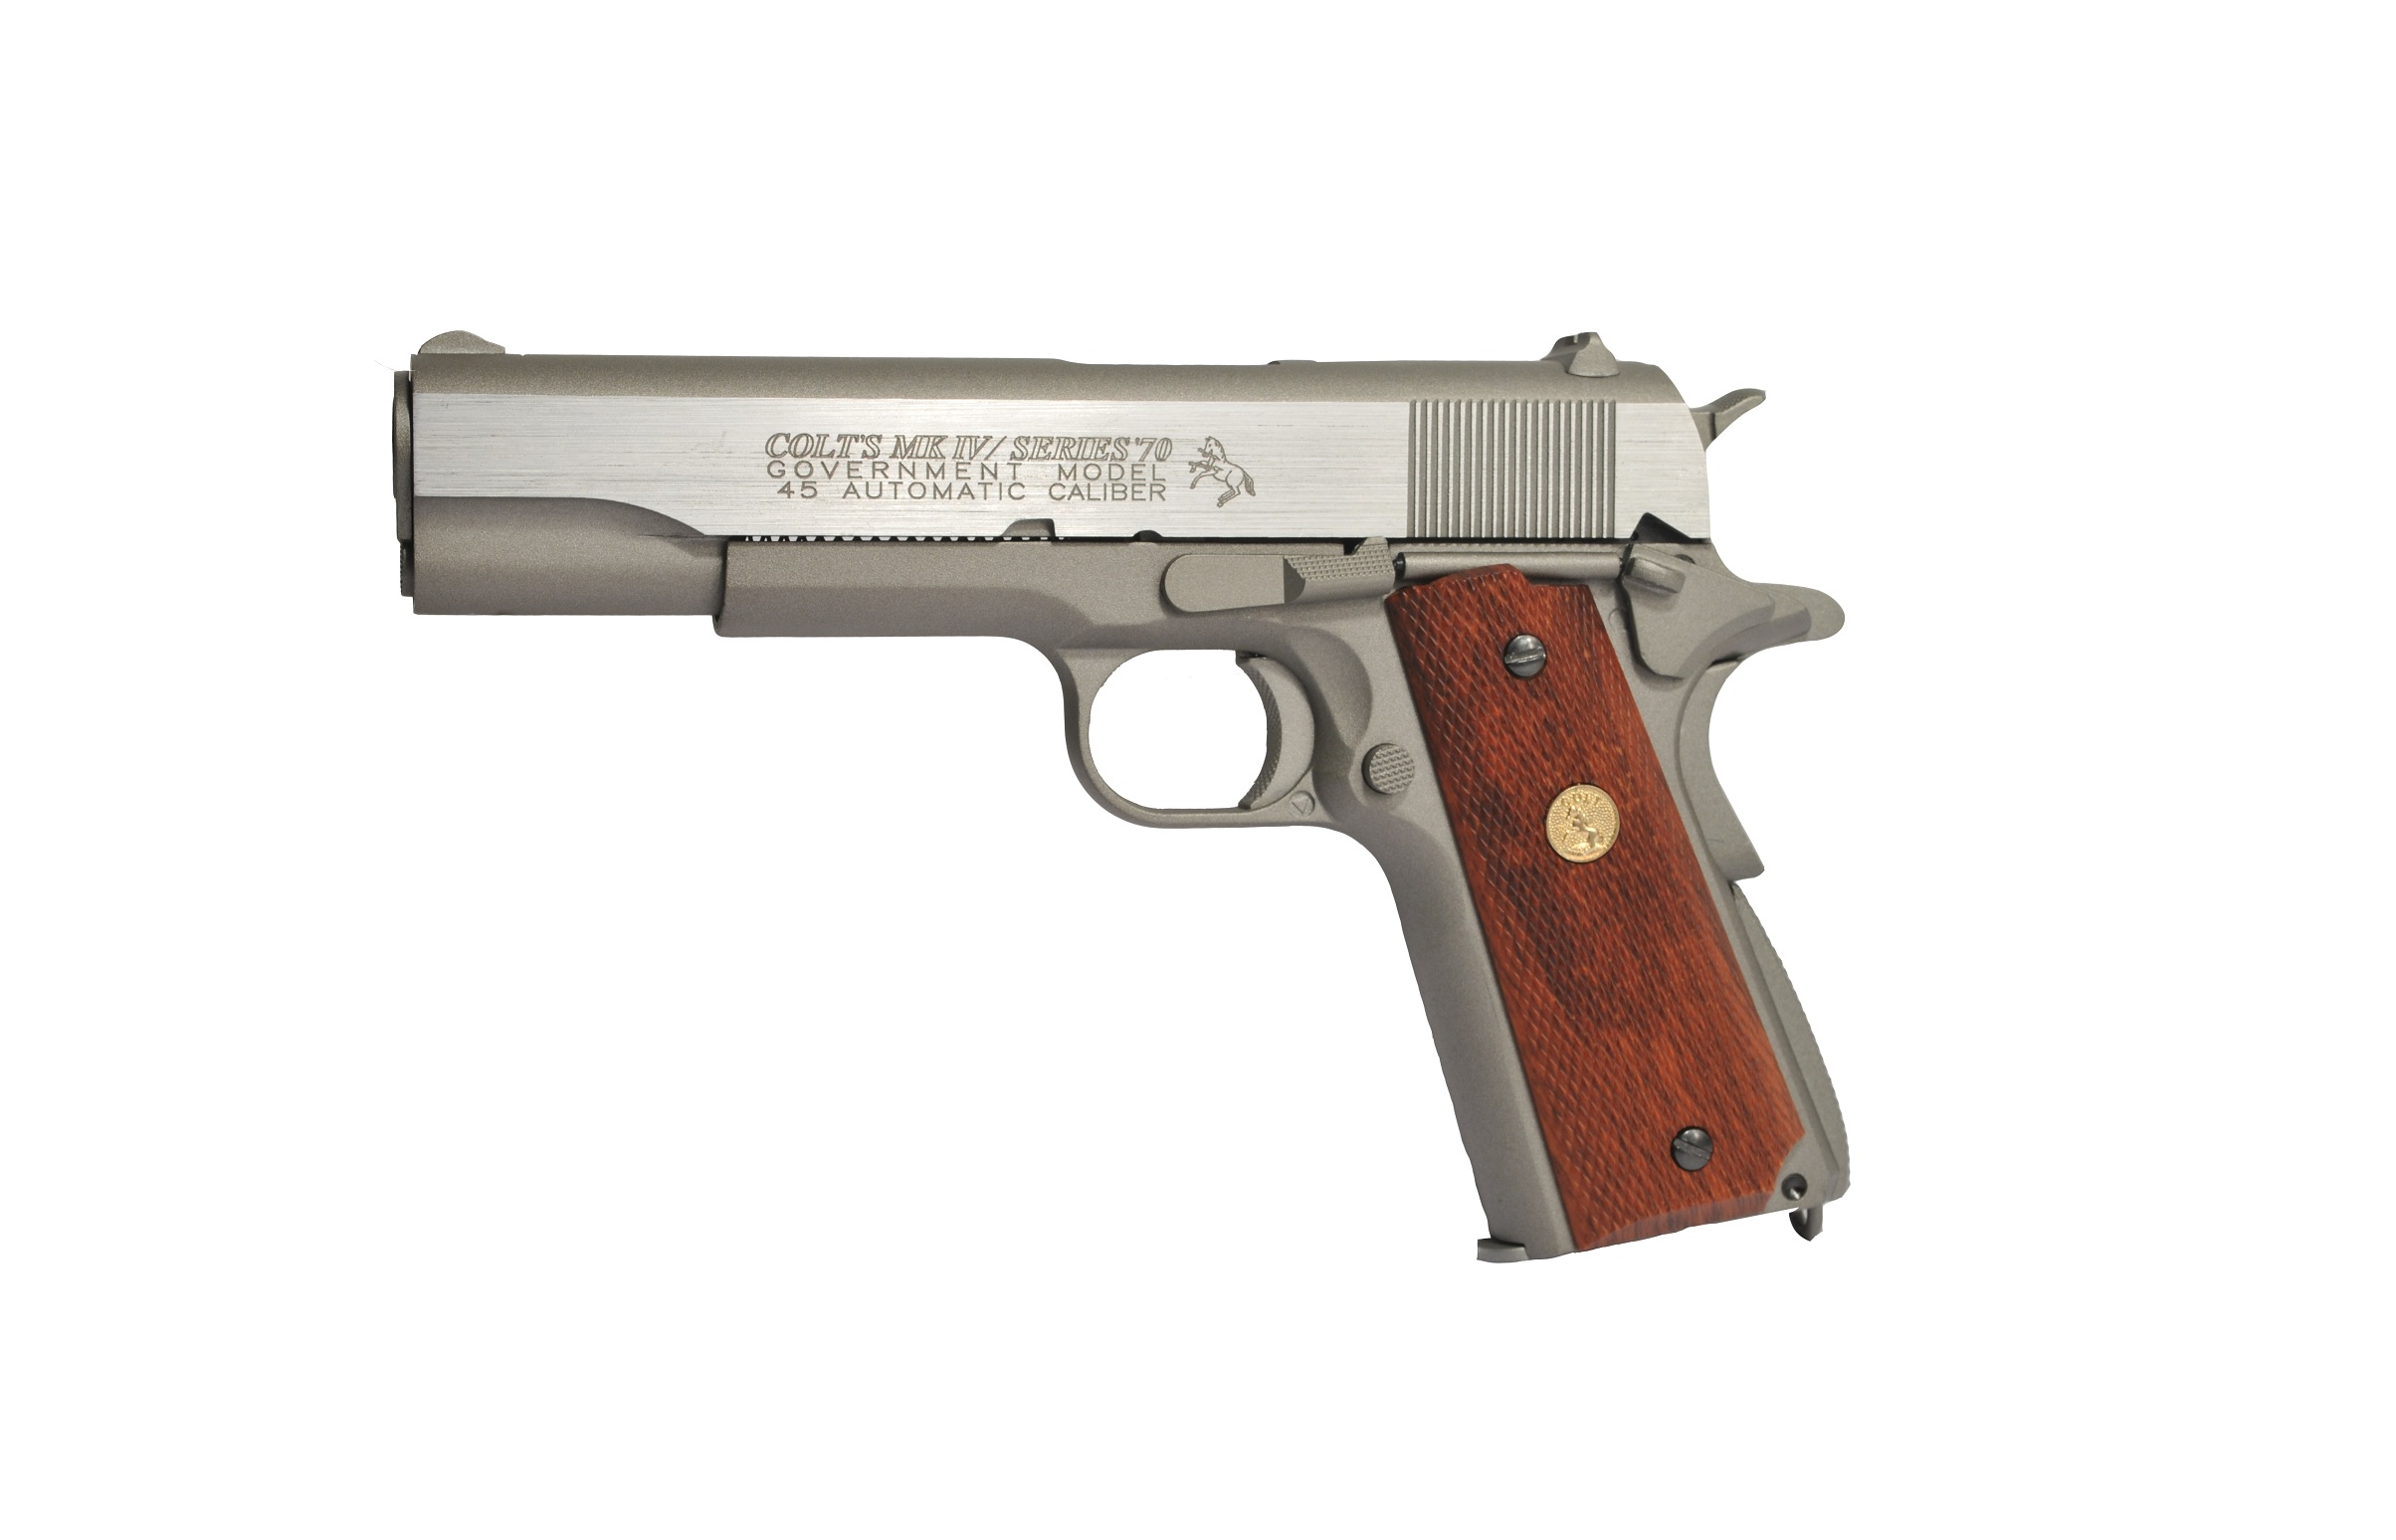 Colt M1911 - Mkiv Series 70 - Co2 - Gbb - Full Metal imagine